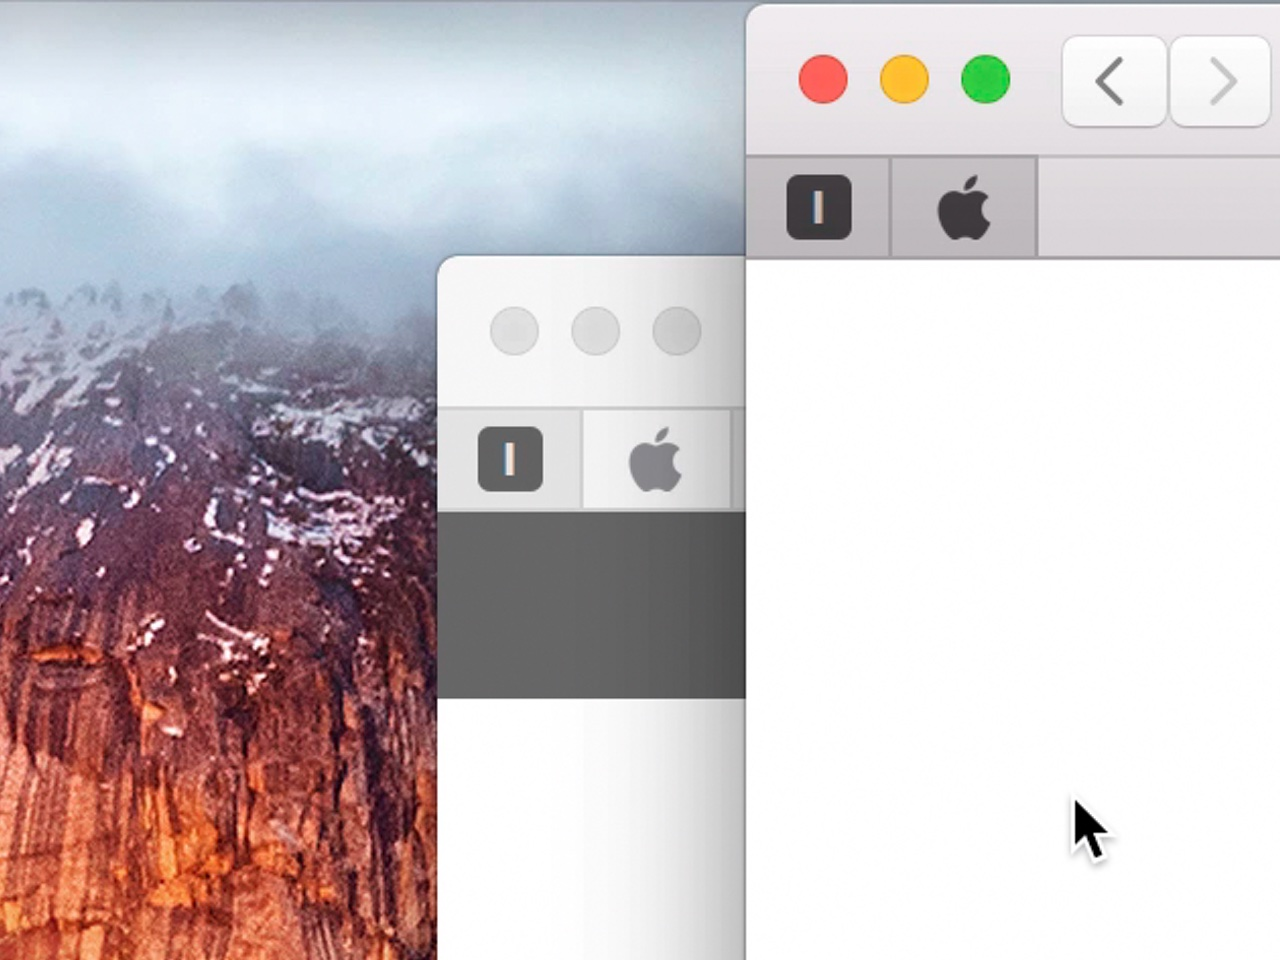 OS X El Capitan Safari Pinned Tabs Featured